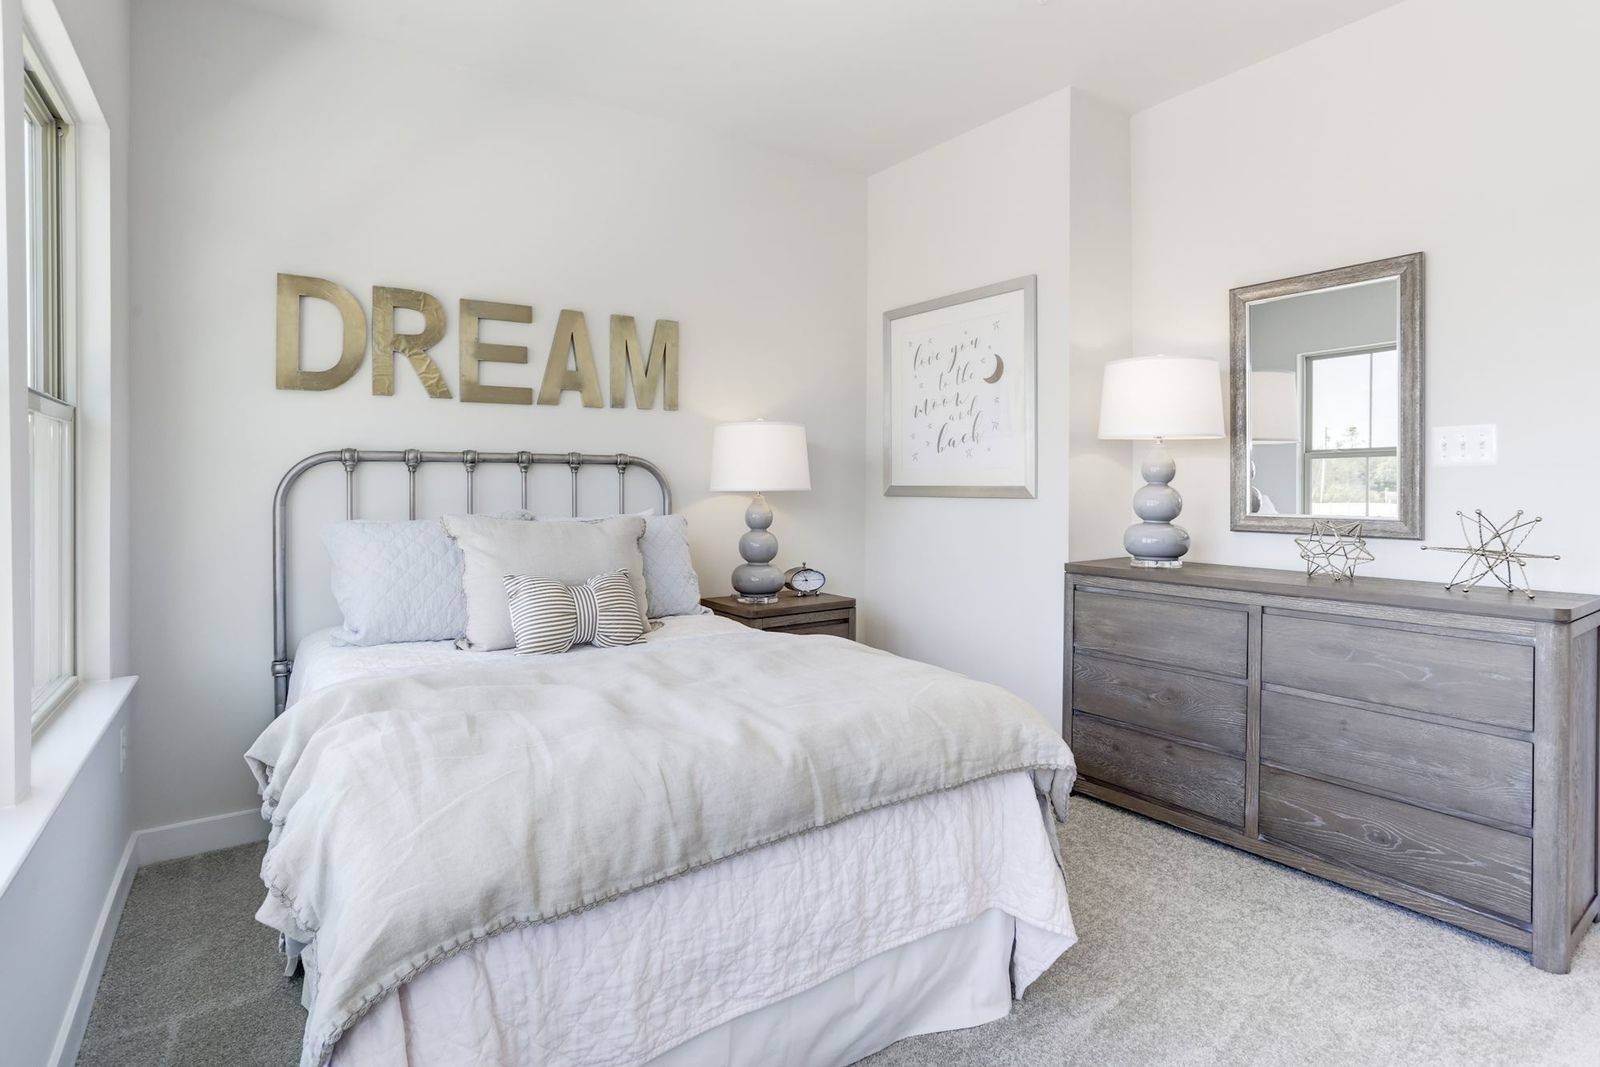 Bedroom featured in the Serenade By Ryan Homes in Baltimore, MD